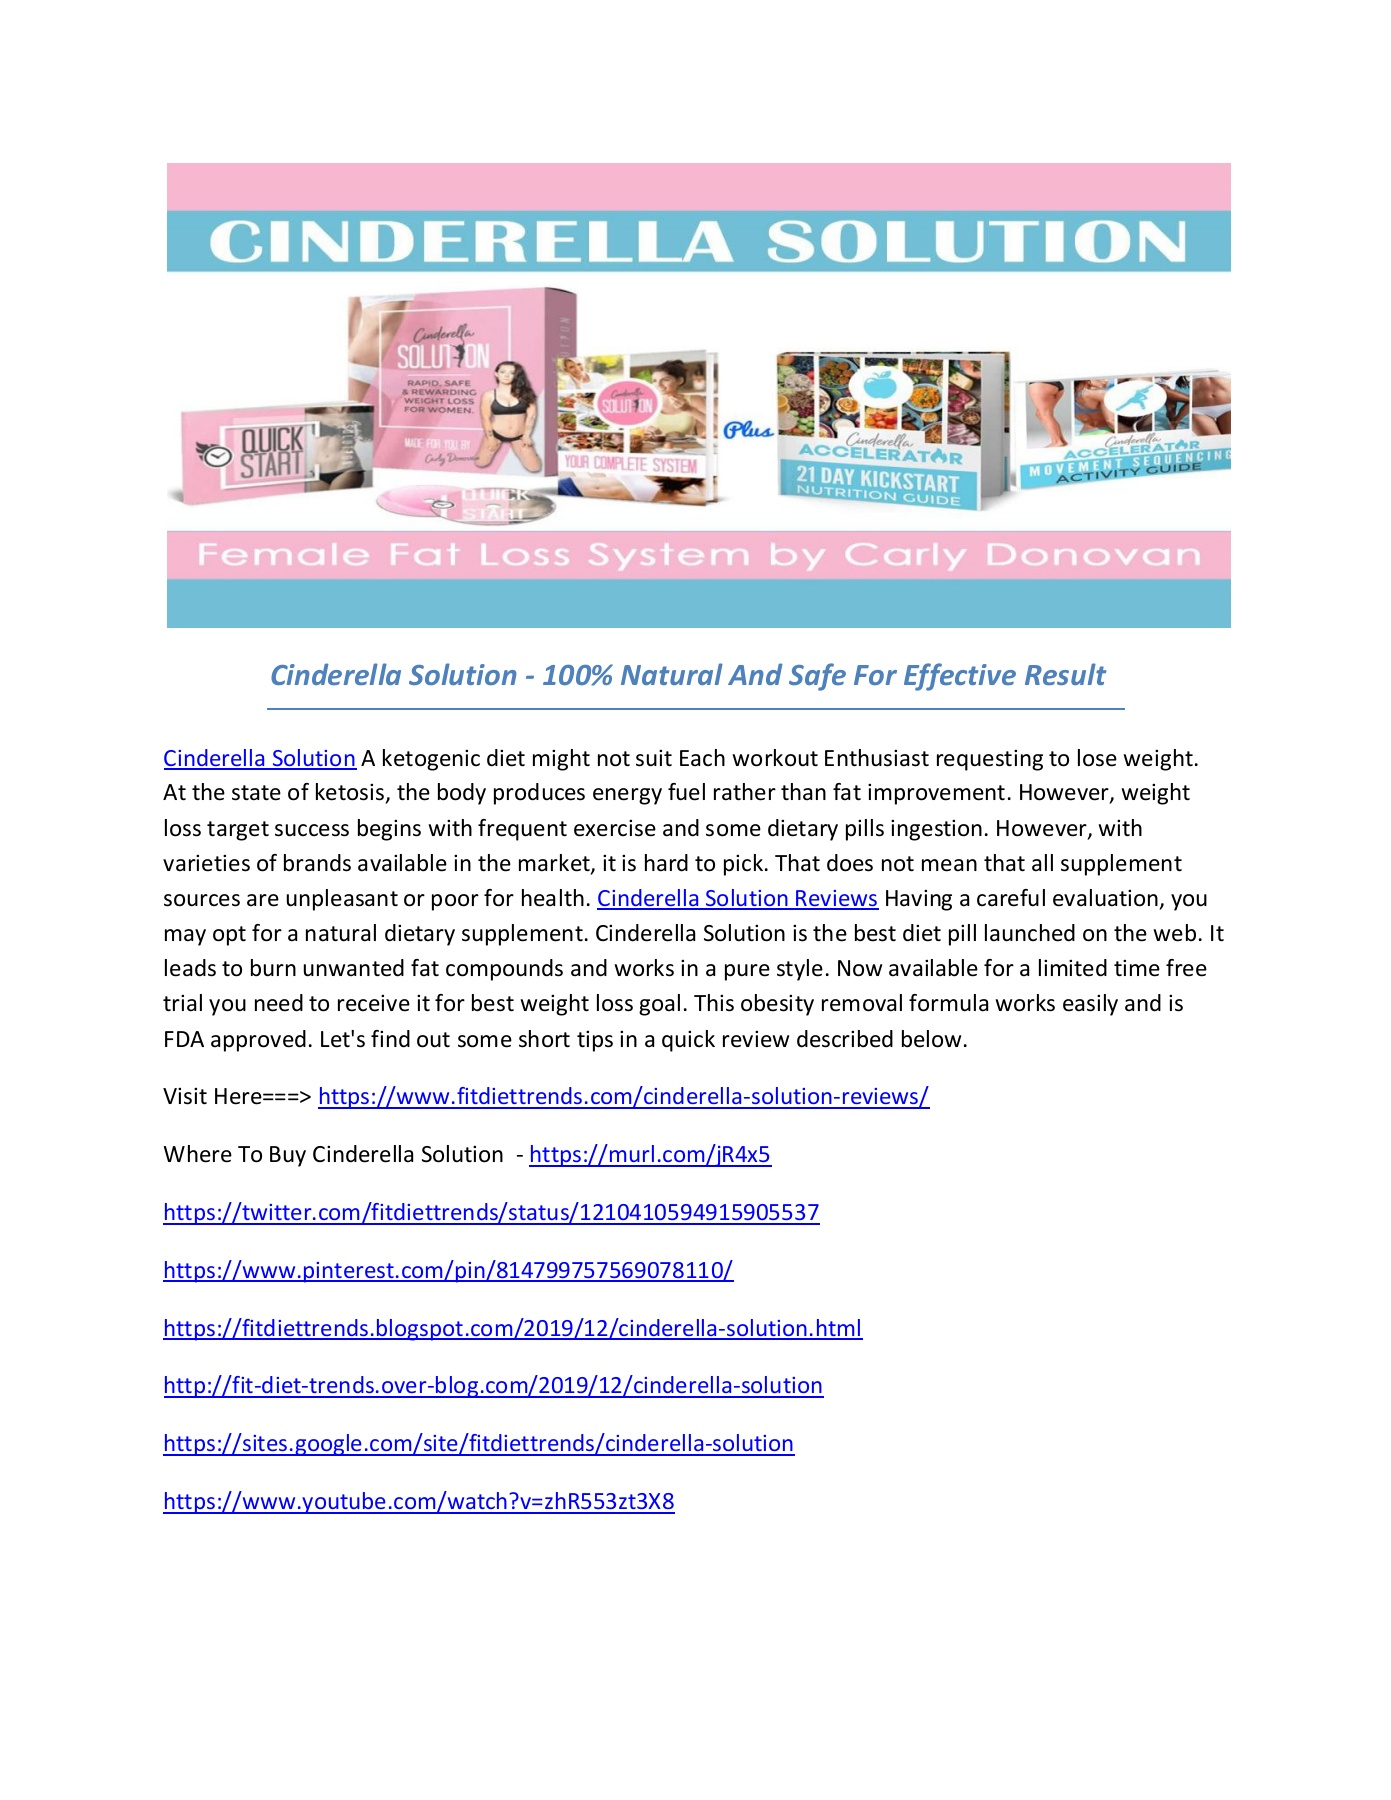 Diet Cinderella Solution Coupon Code 50 Off 2020